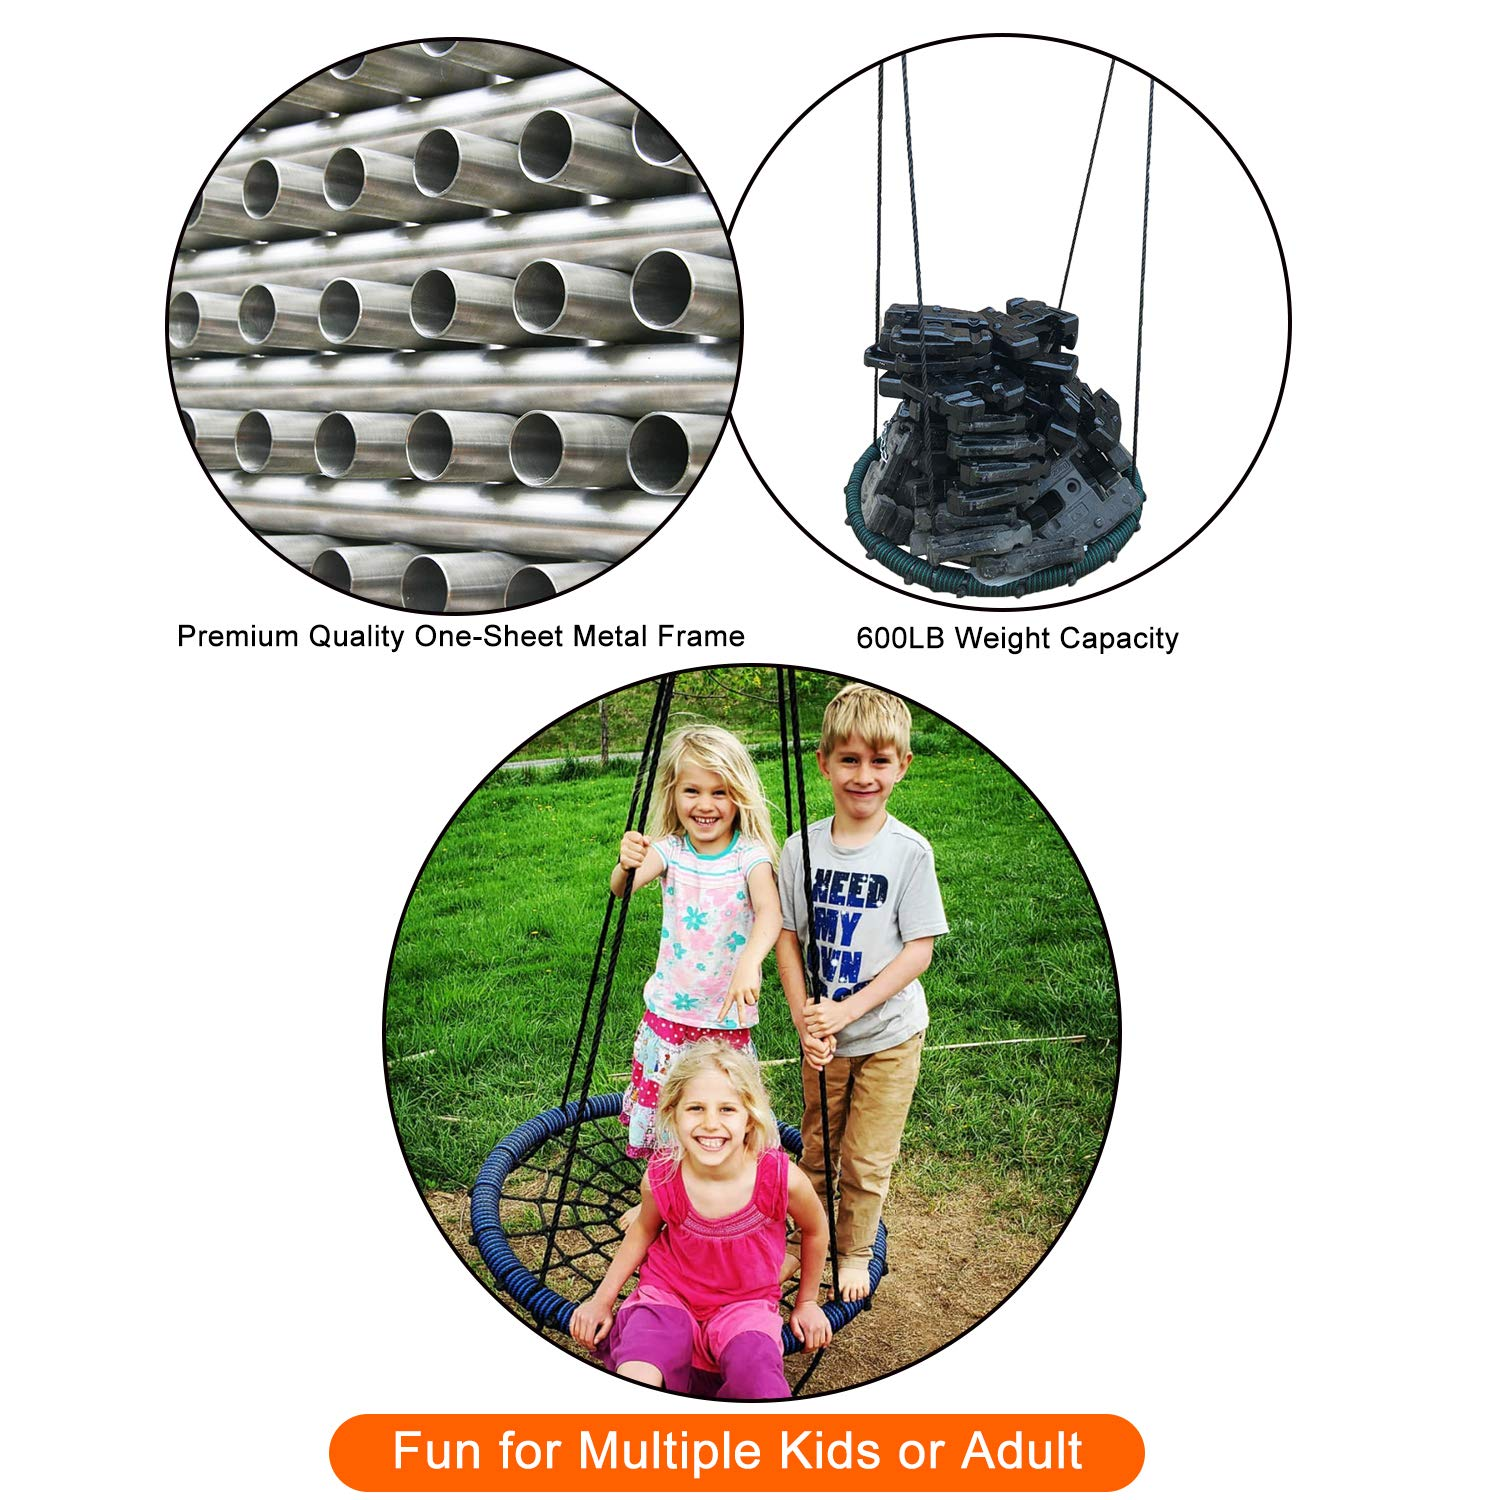 Green Big Elephant Play Spider Web Tree Swing Outdoor Round Net 31 inch Diameter Rope Swing 71 inch Rope Max 600 Lbs Attaches to Trees Swing Sets Fun for Multiple Kids or Adult Safe and Durable